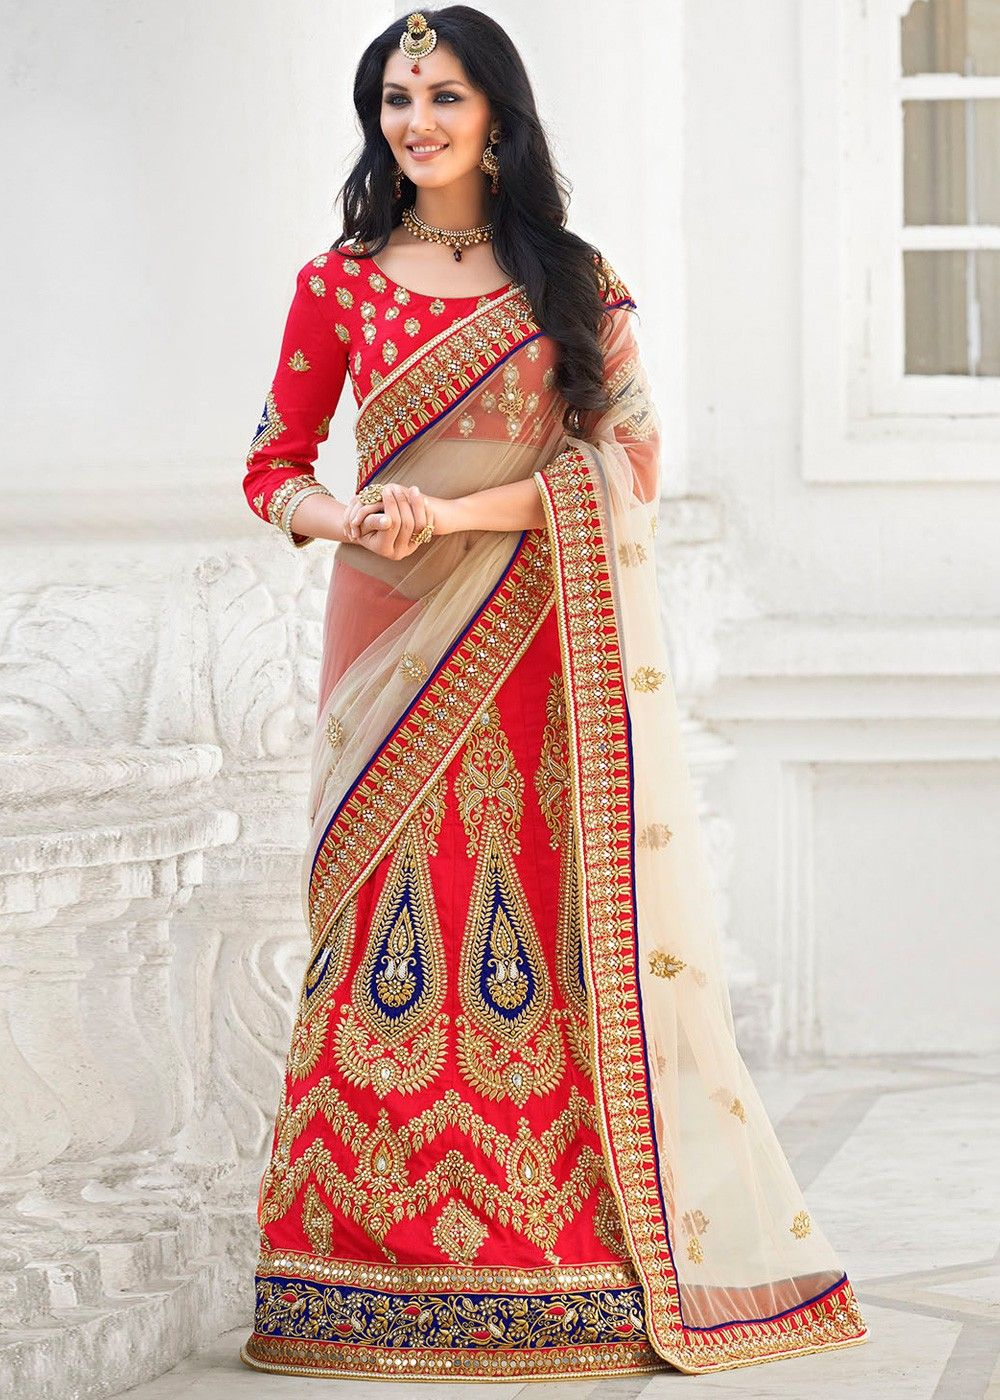 bac17fecc0 Cream and #red #net and art #silk #lehengastyle #saree beautified with  mirror effect, beads, stone, zari, #resham embroidery and patch border work.